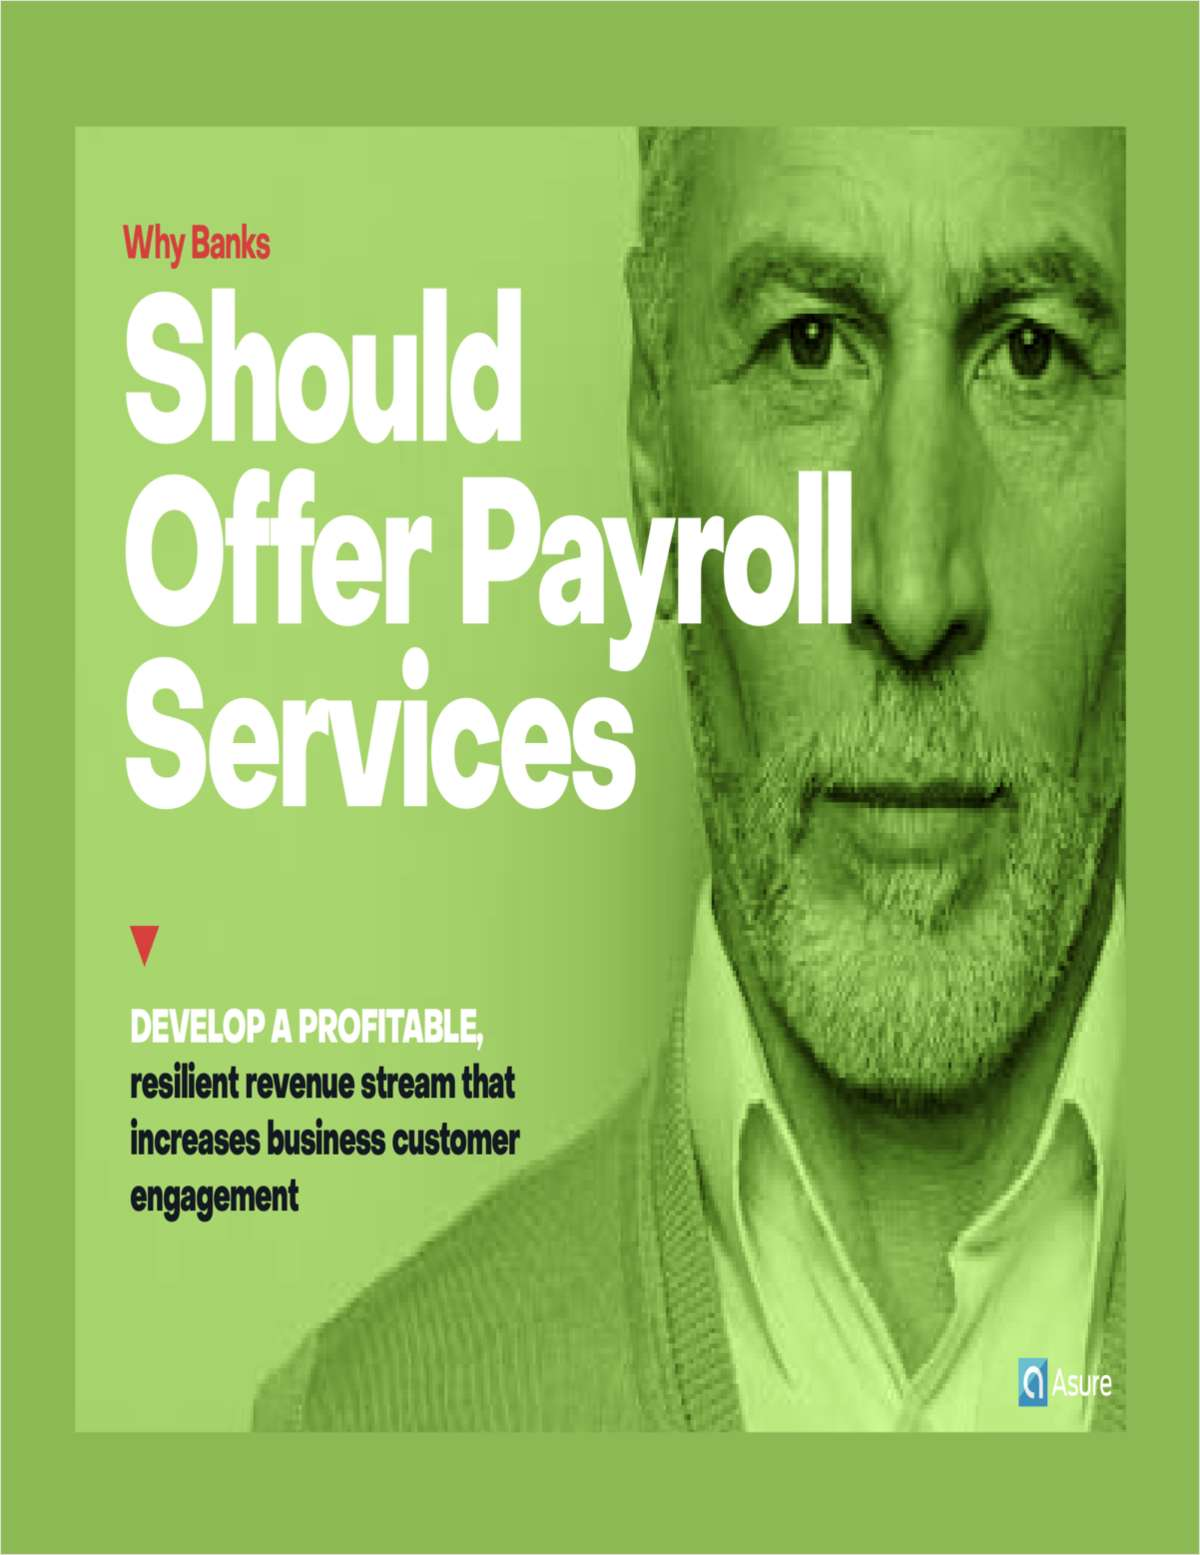 Why Banks Should Offer Payroll Services